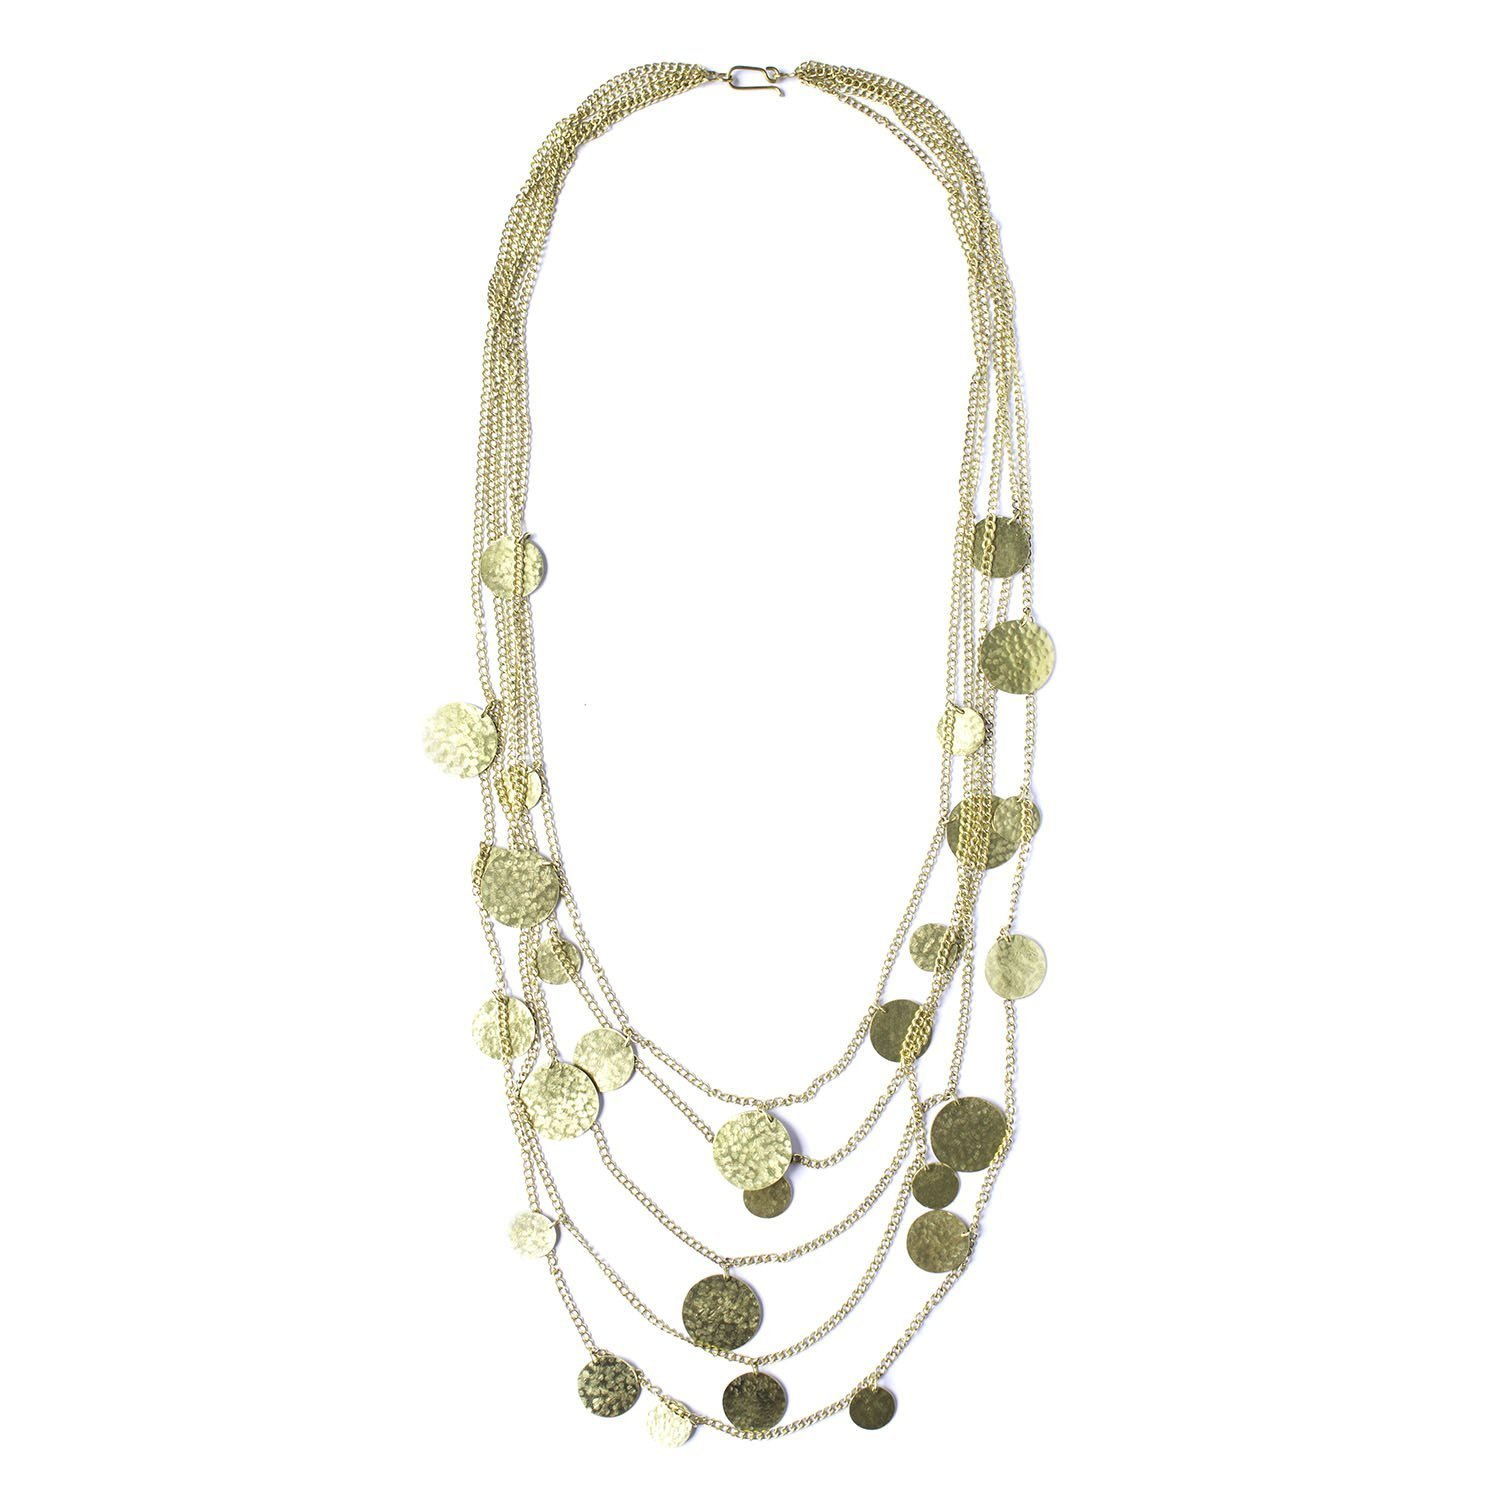 Handcrafted in kenya: jewelry